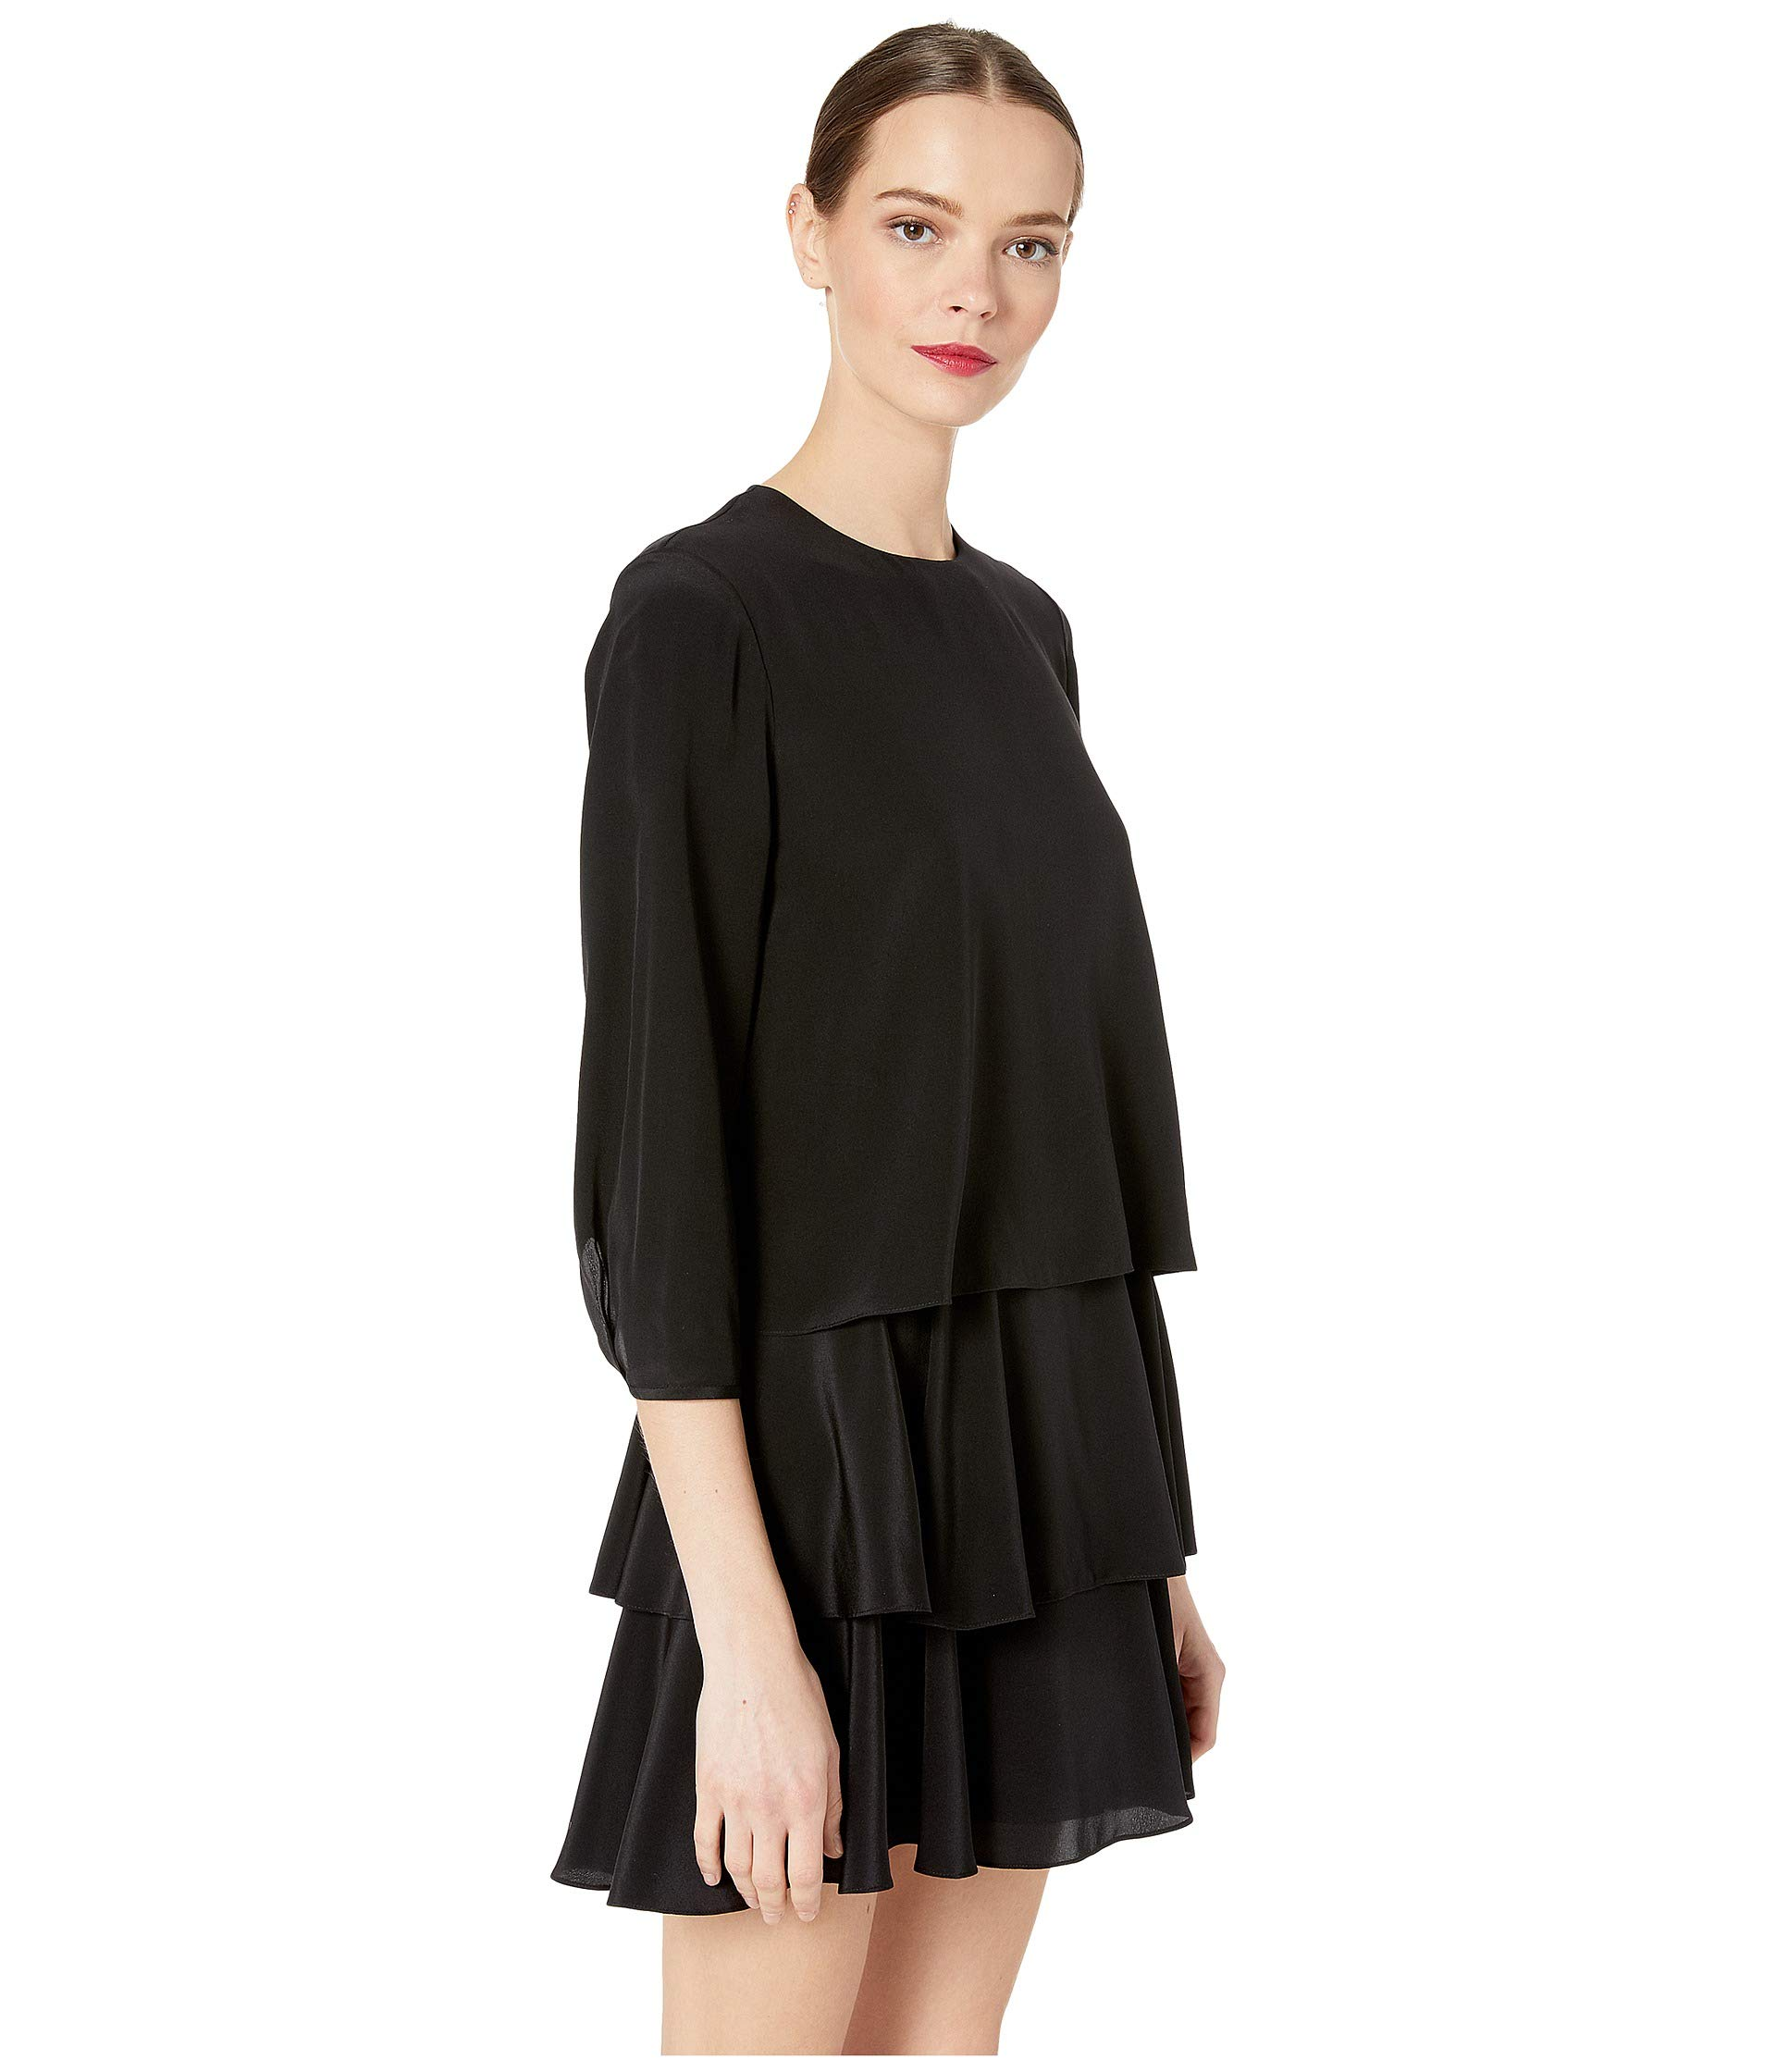 Black Dress Wu Jason Grey Long Sleeve 7q6Fn8w